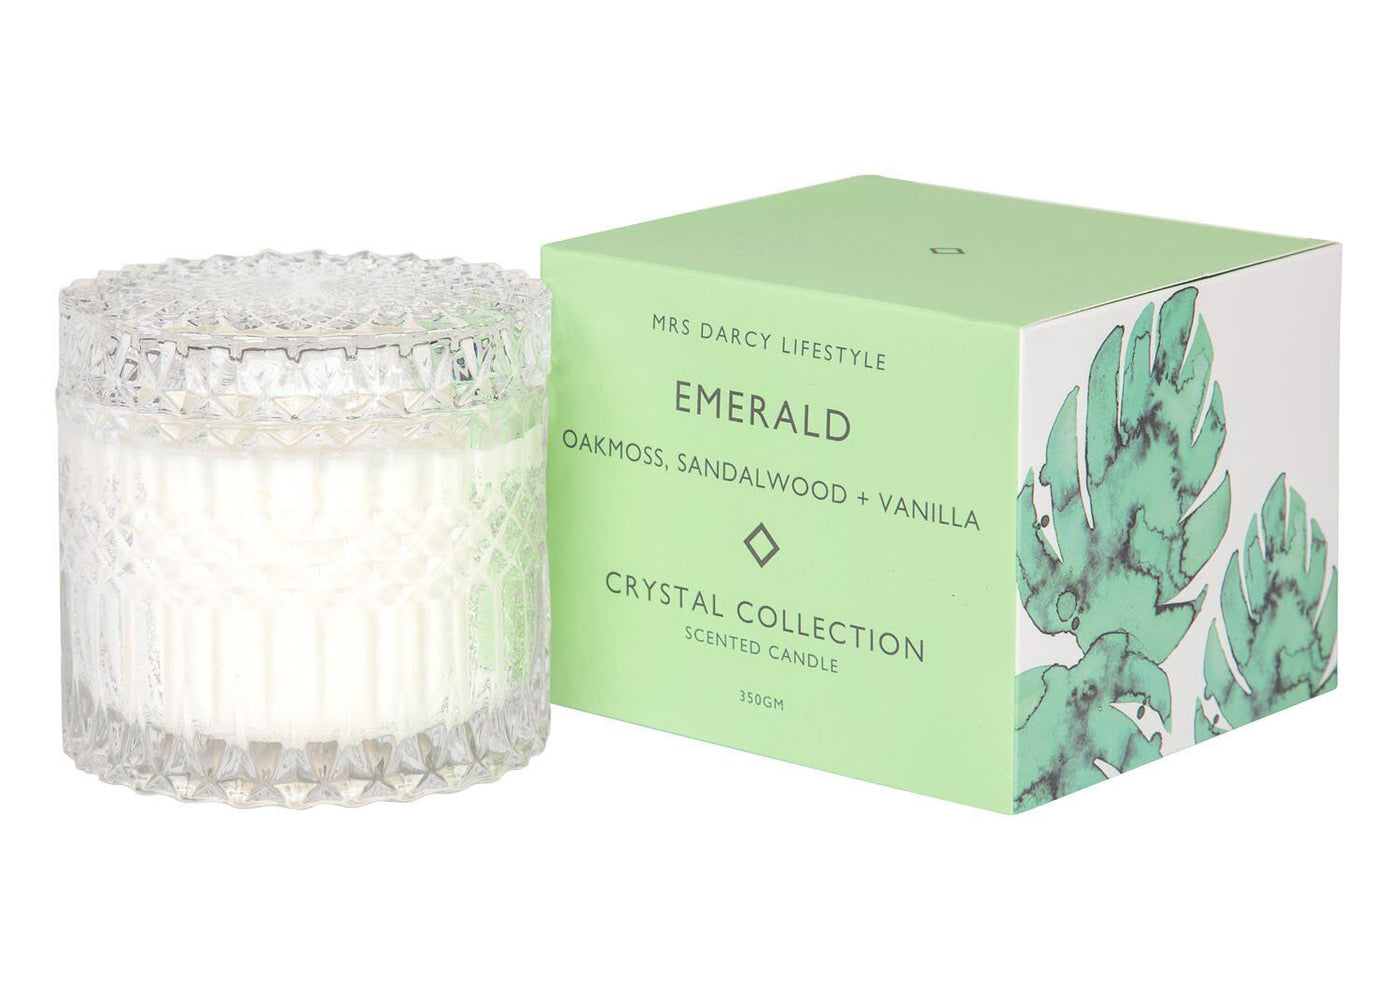 Emerald - Oakmoss, Sandalwood+ Vanilla